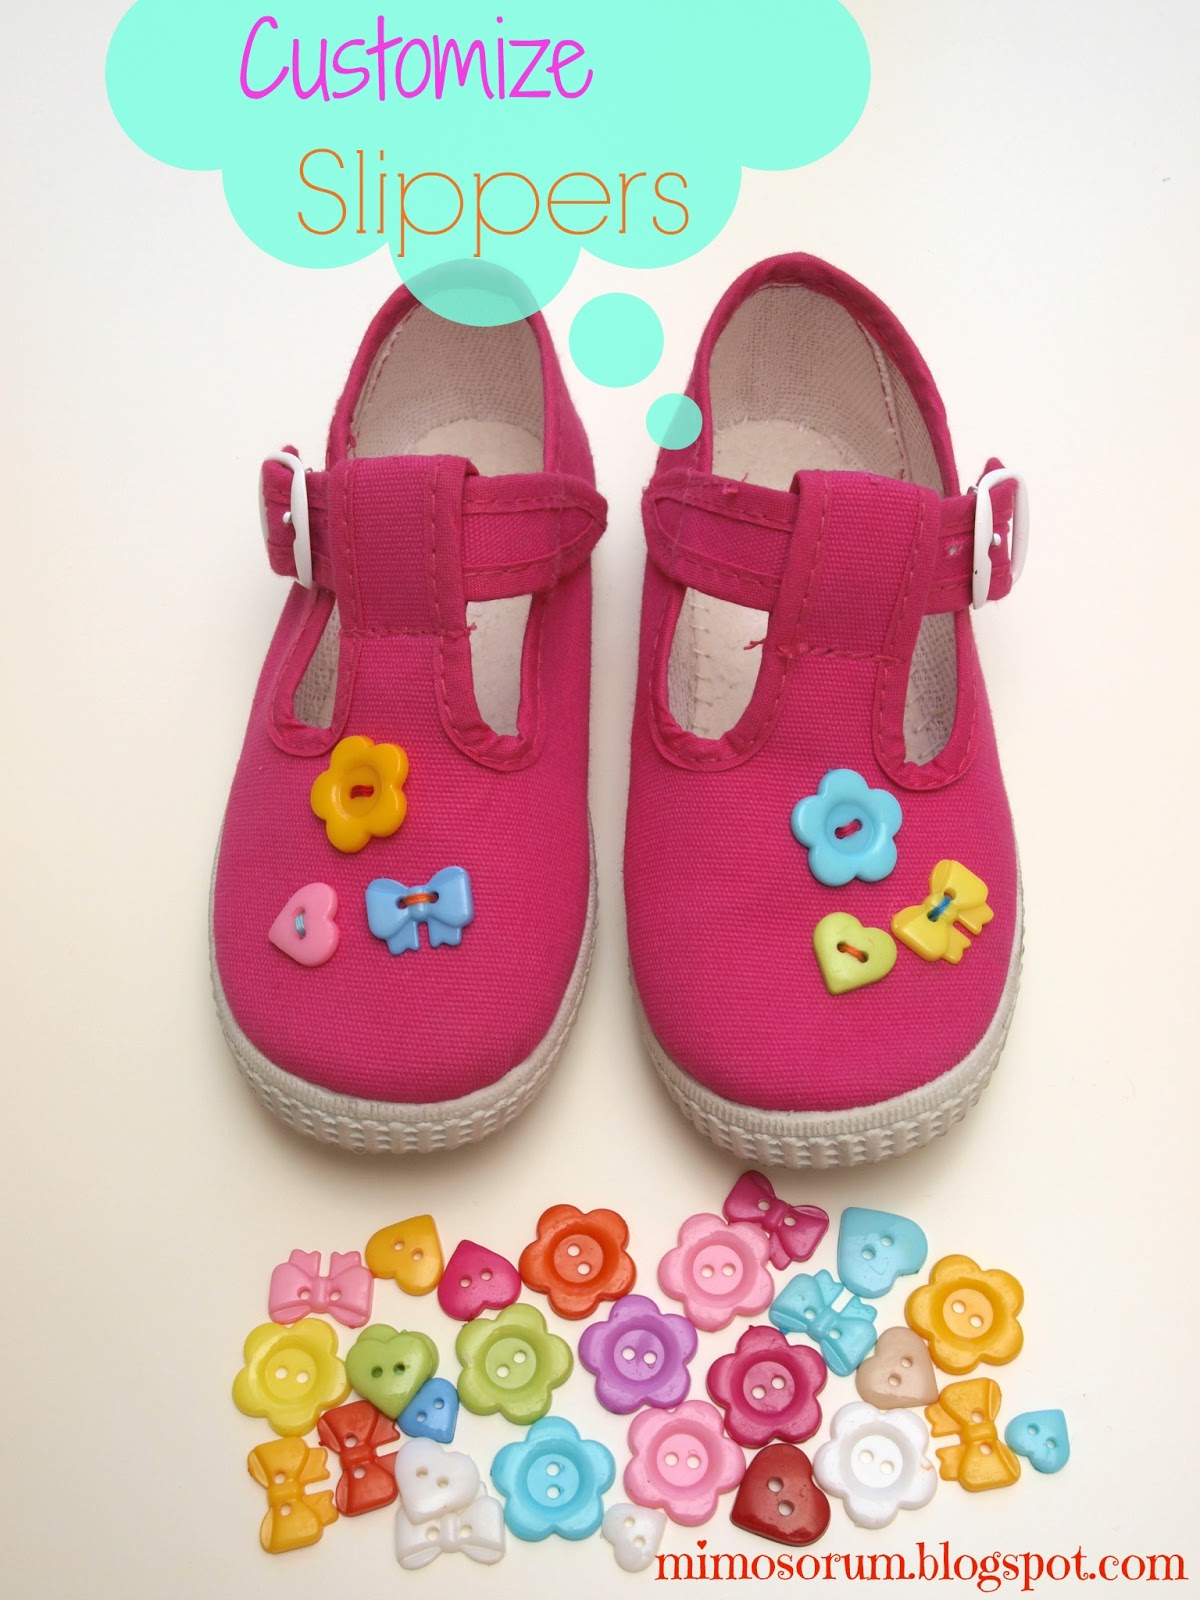 Customize Slippers. Mimosorum